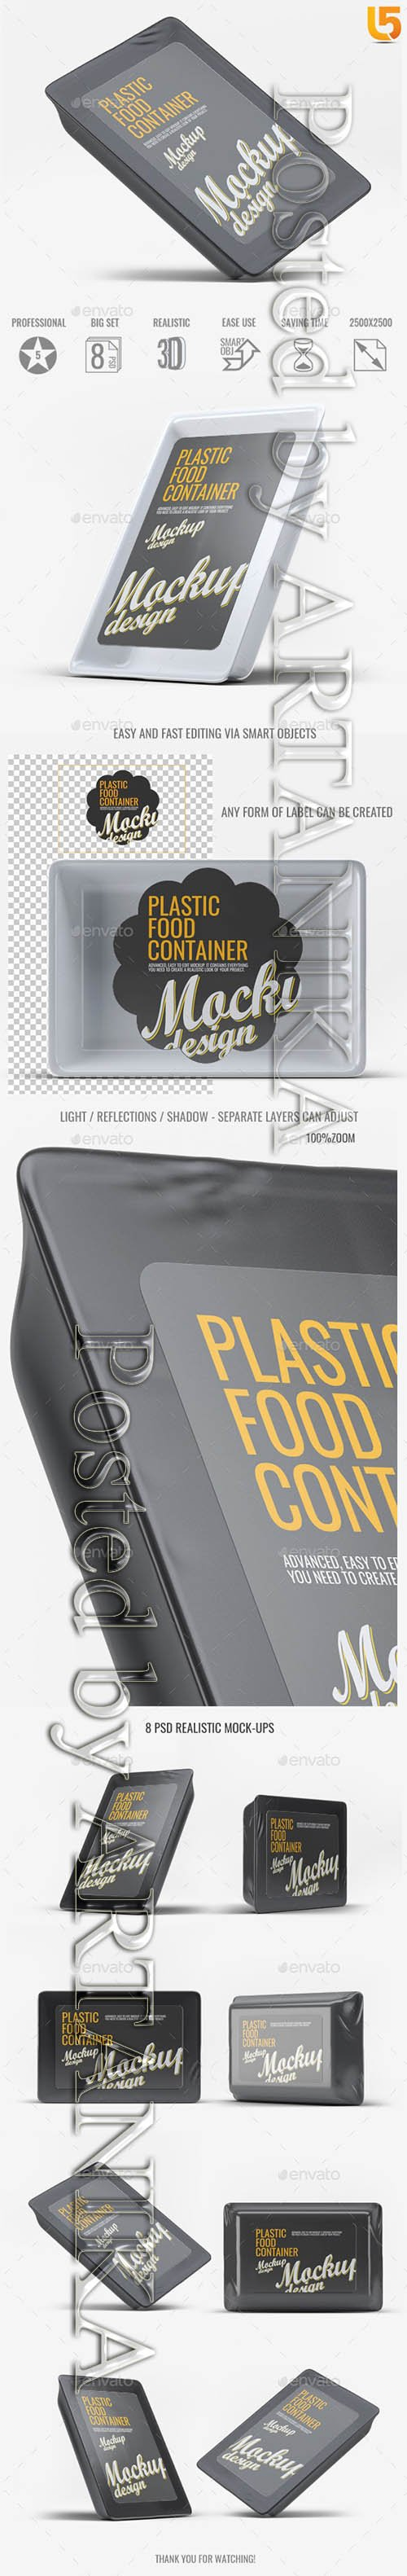 Plastic Food Tray Mock-Up 21792726